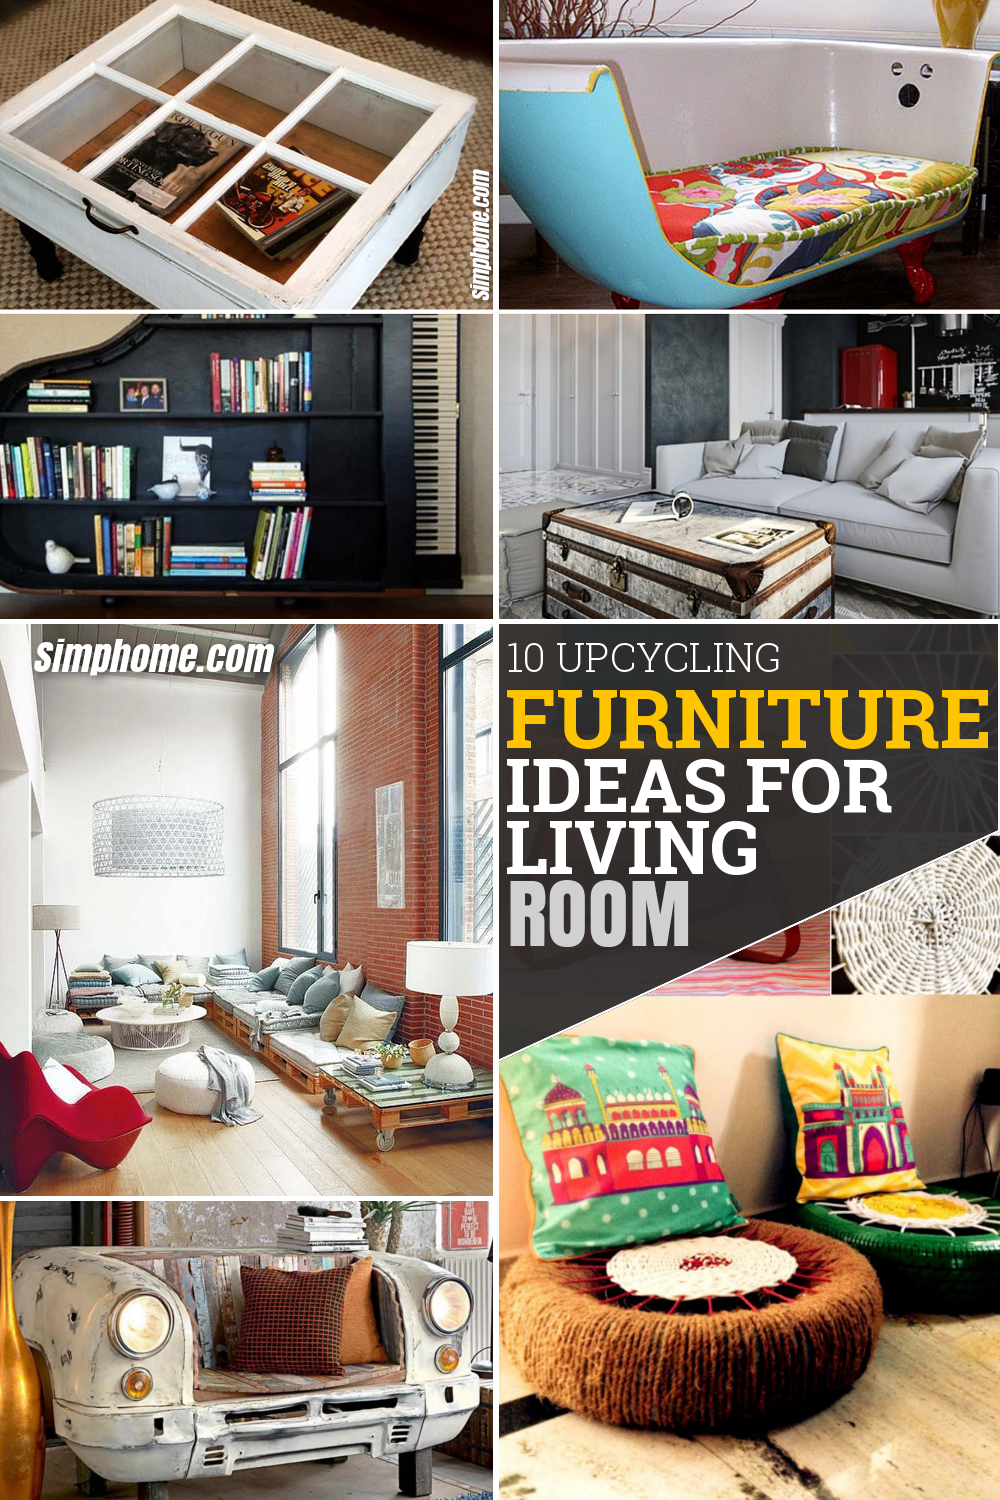 10 Upcycling Furniture Ideas for a Living Room via Simphome.com Featured Pinterest Image